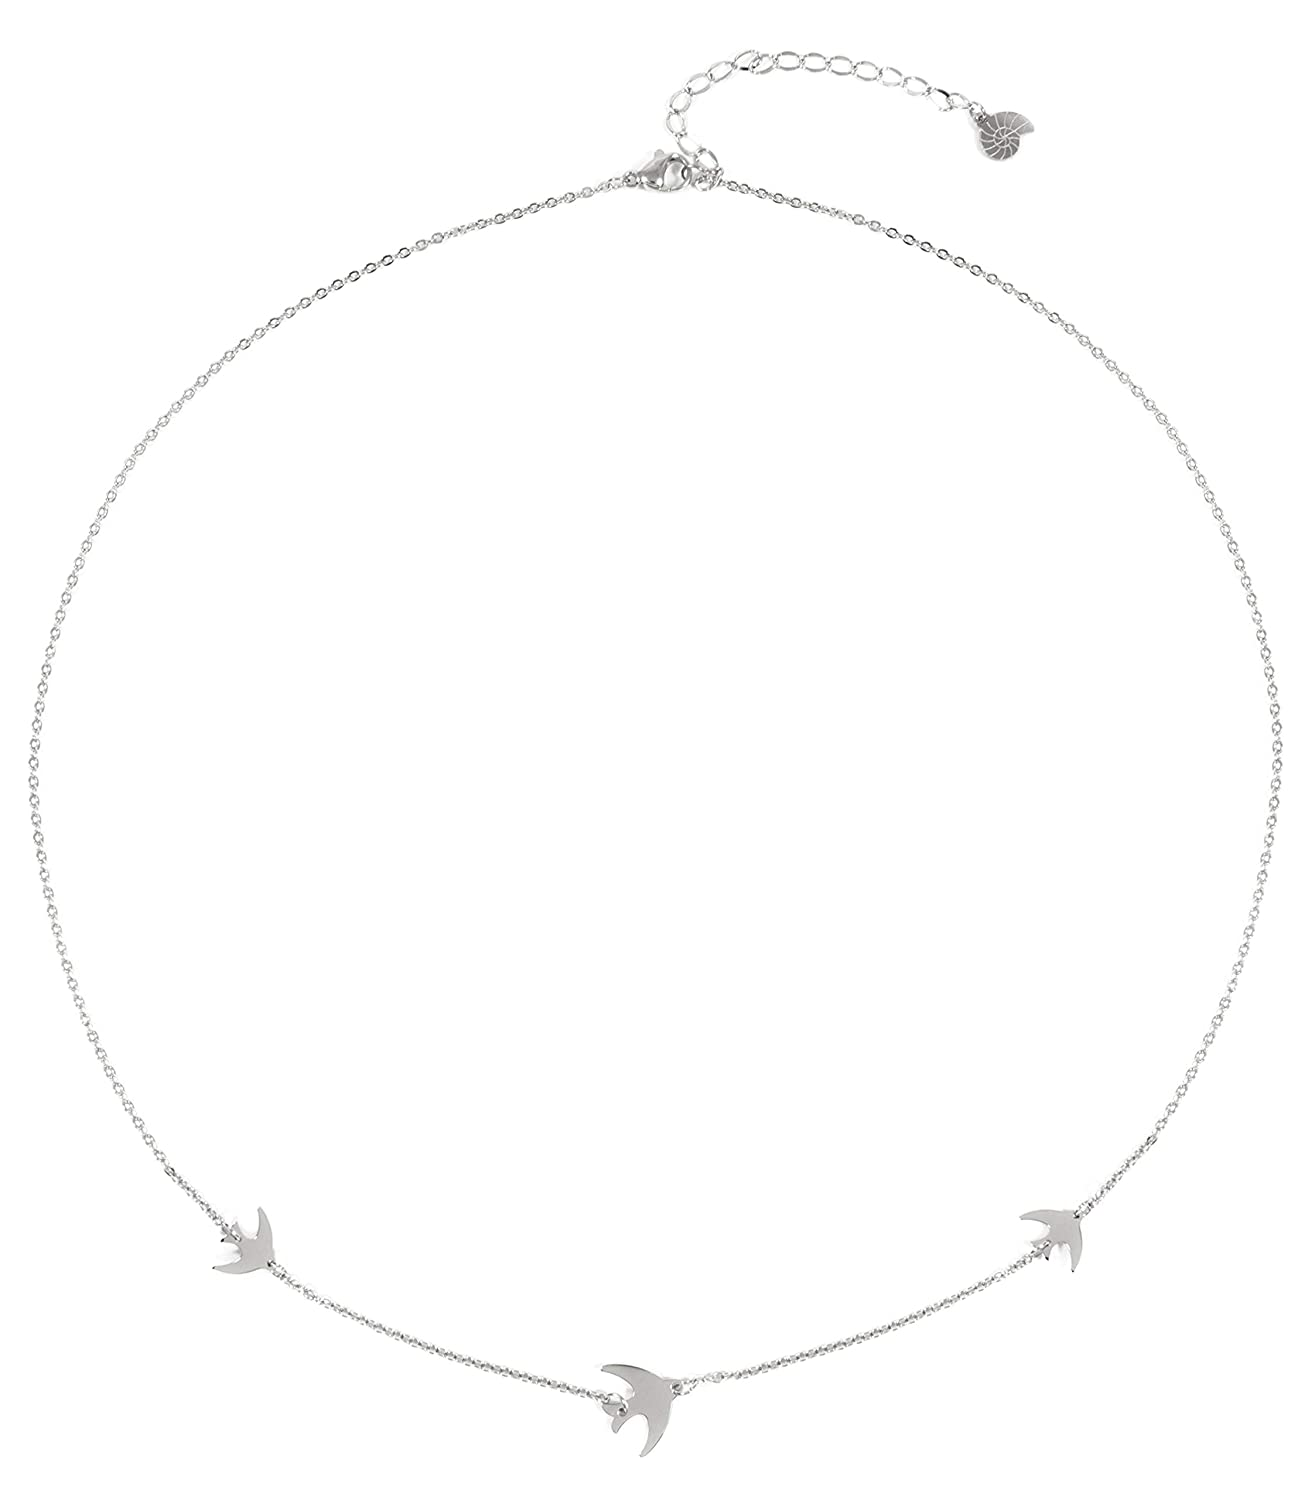 Happiness Boutique Flying Birds Necklace in Silver Color Delicate Necklace with Swallows Stainless Steel Jewelry